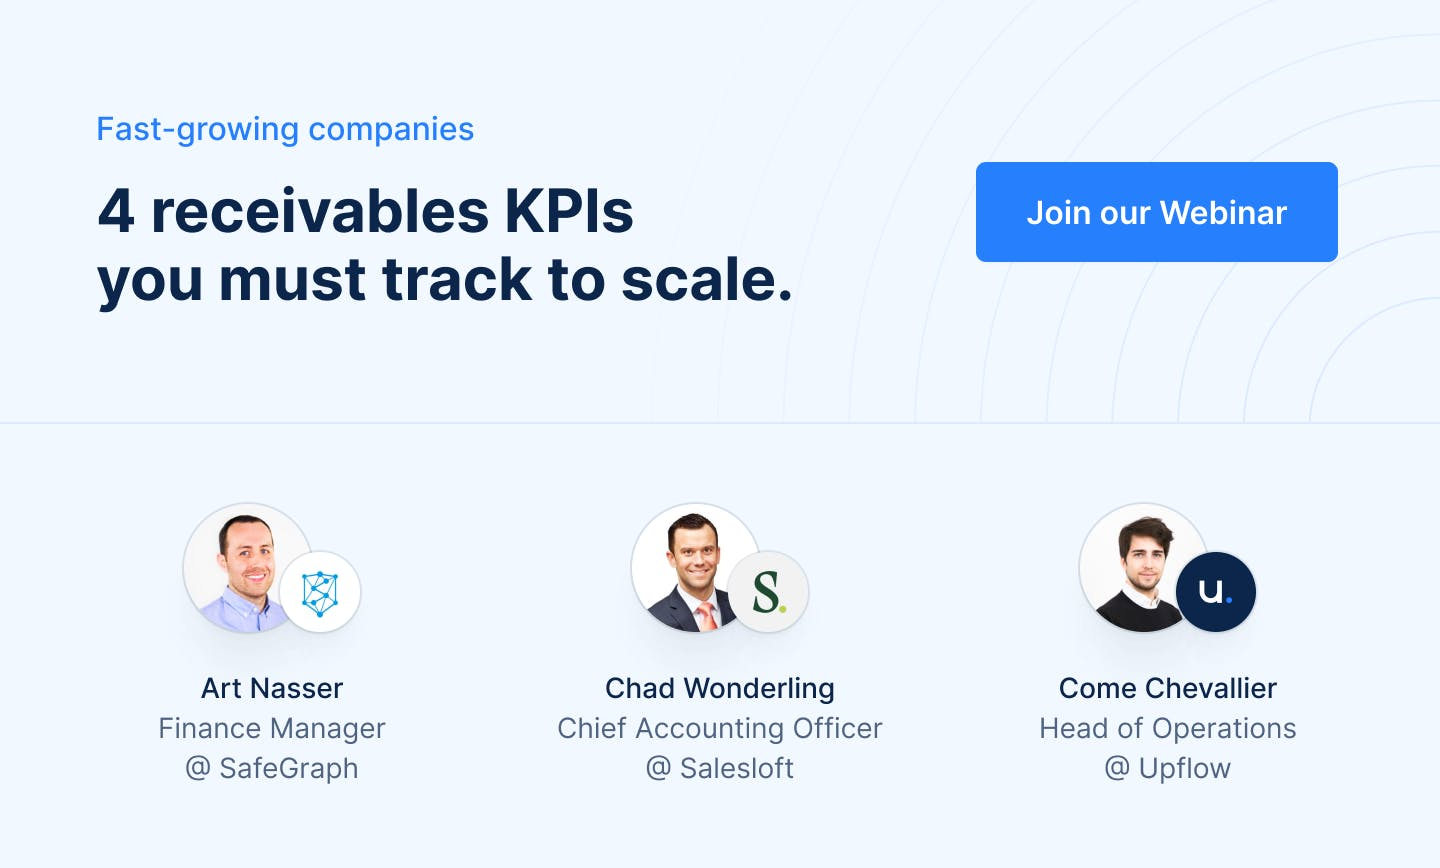 4 receivables KPIs you must track to scale